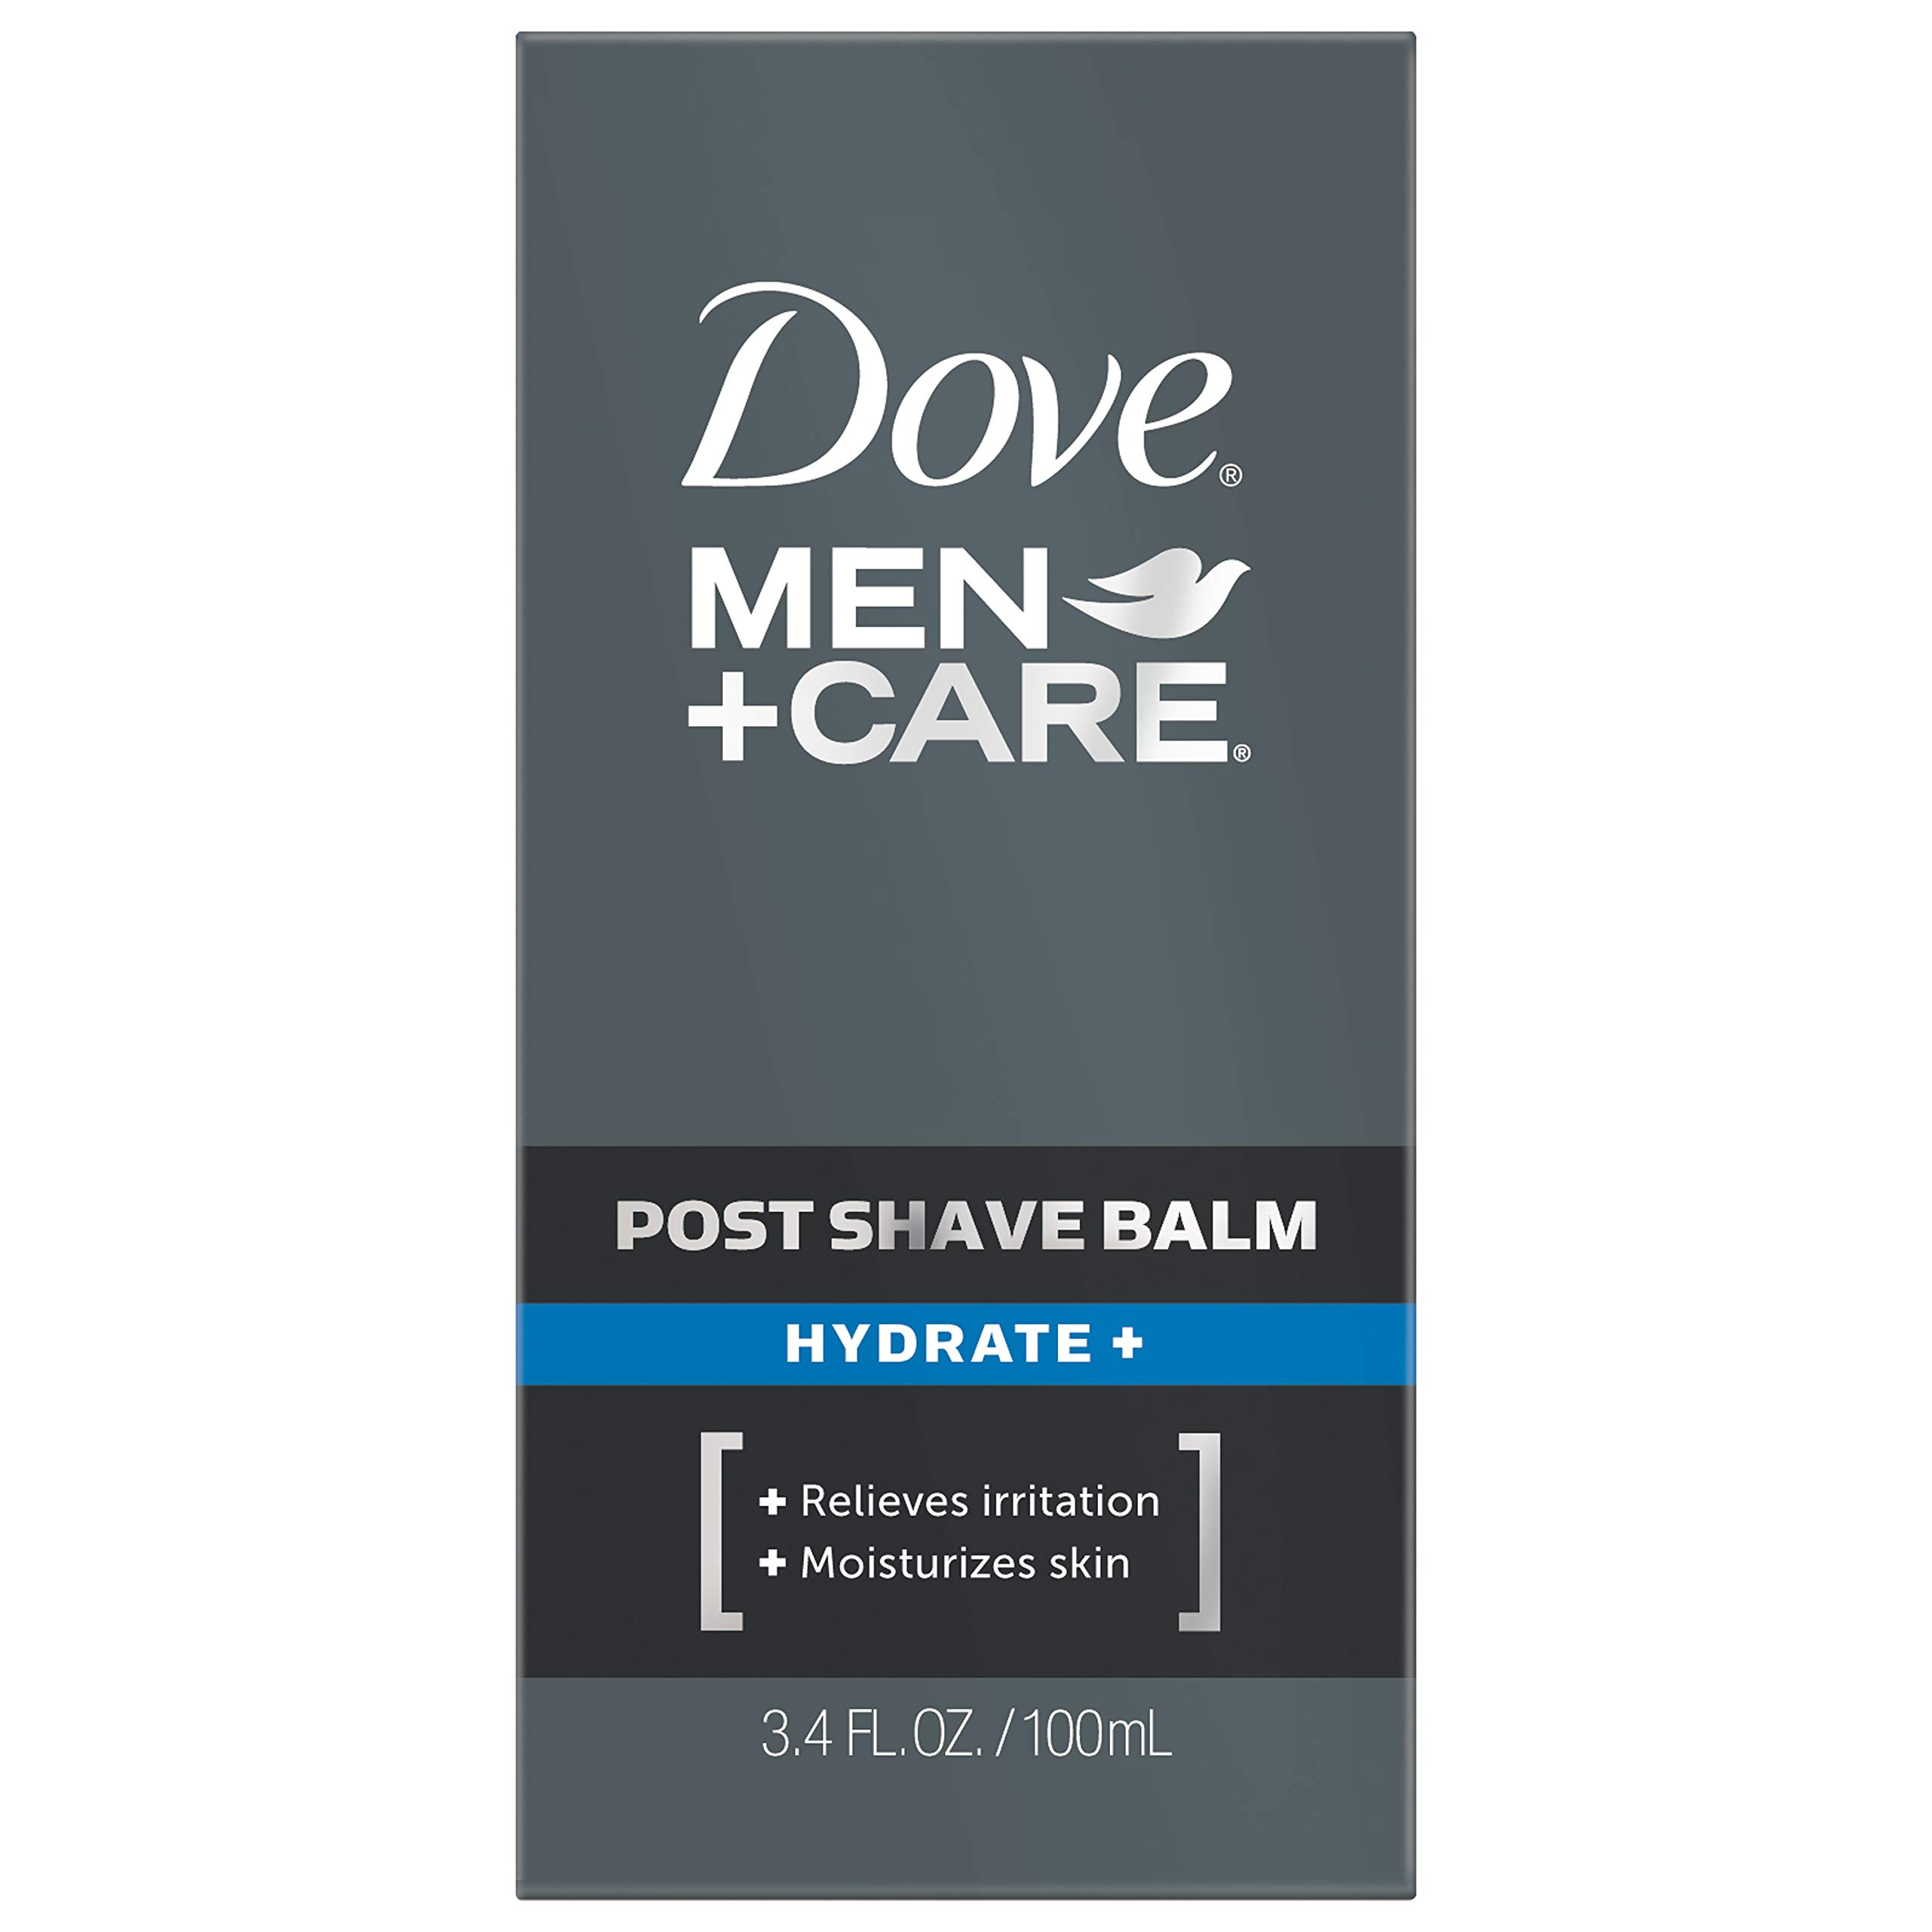 Dove Men+Care Post Shave Balm, Hydrate+, 3.4 Fl Oz, Pack of 2 by Dove